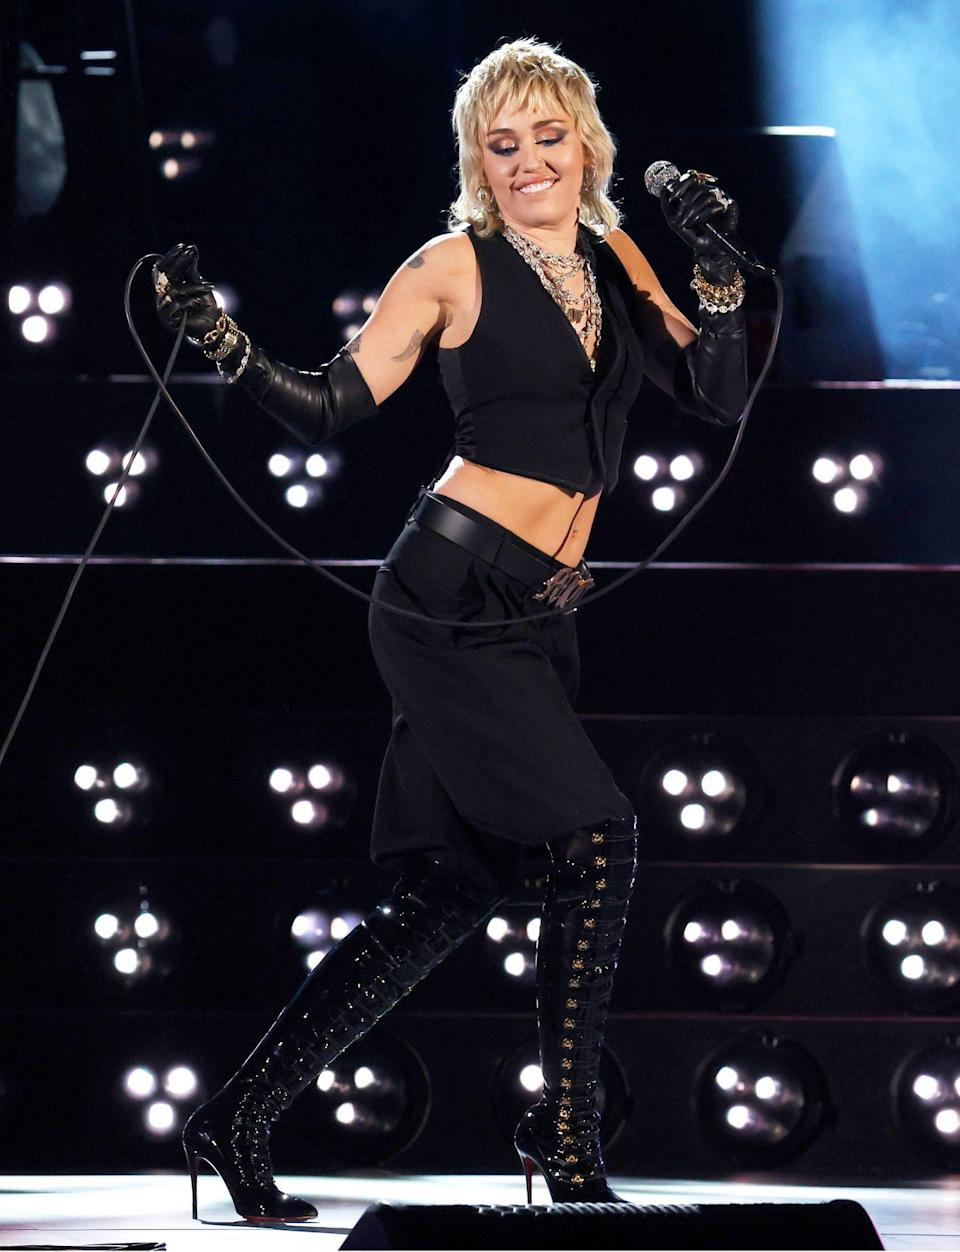 <p>Miley Cyrus hits the stage to perform a tribute to frontline heroes during the 2021 NCAA Final Four at Lucas Oil Stadium on Saturday in Indianapolis, Indiana.</p>